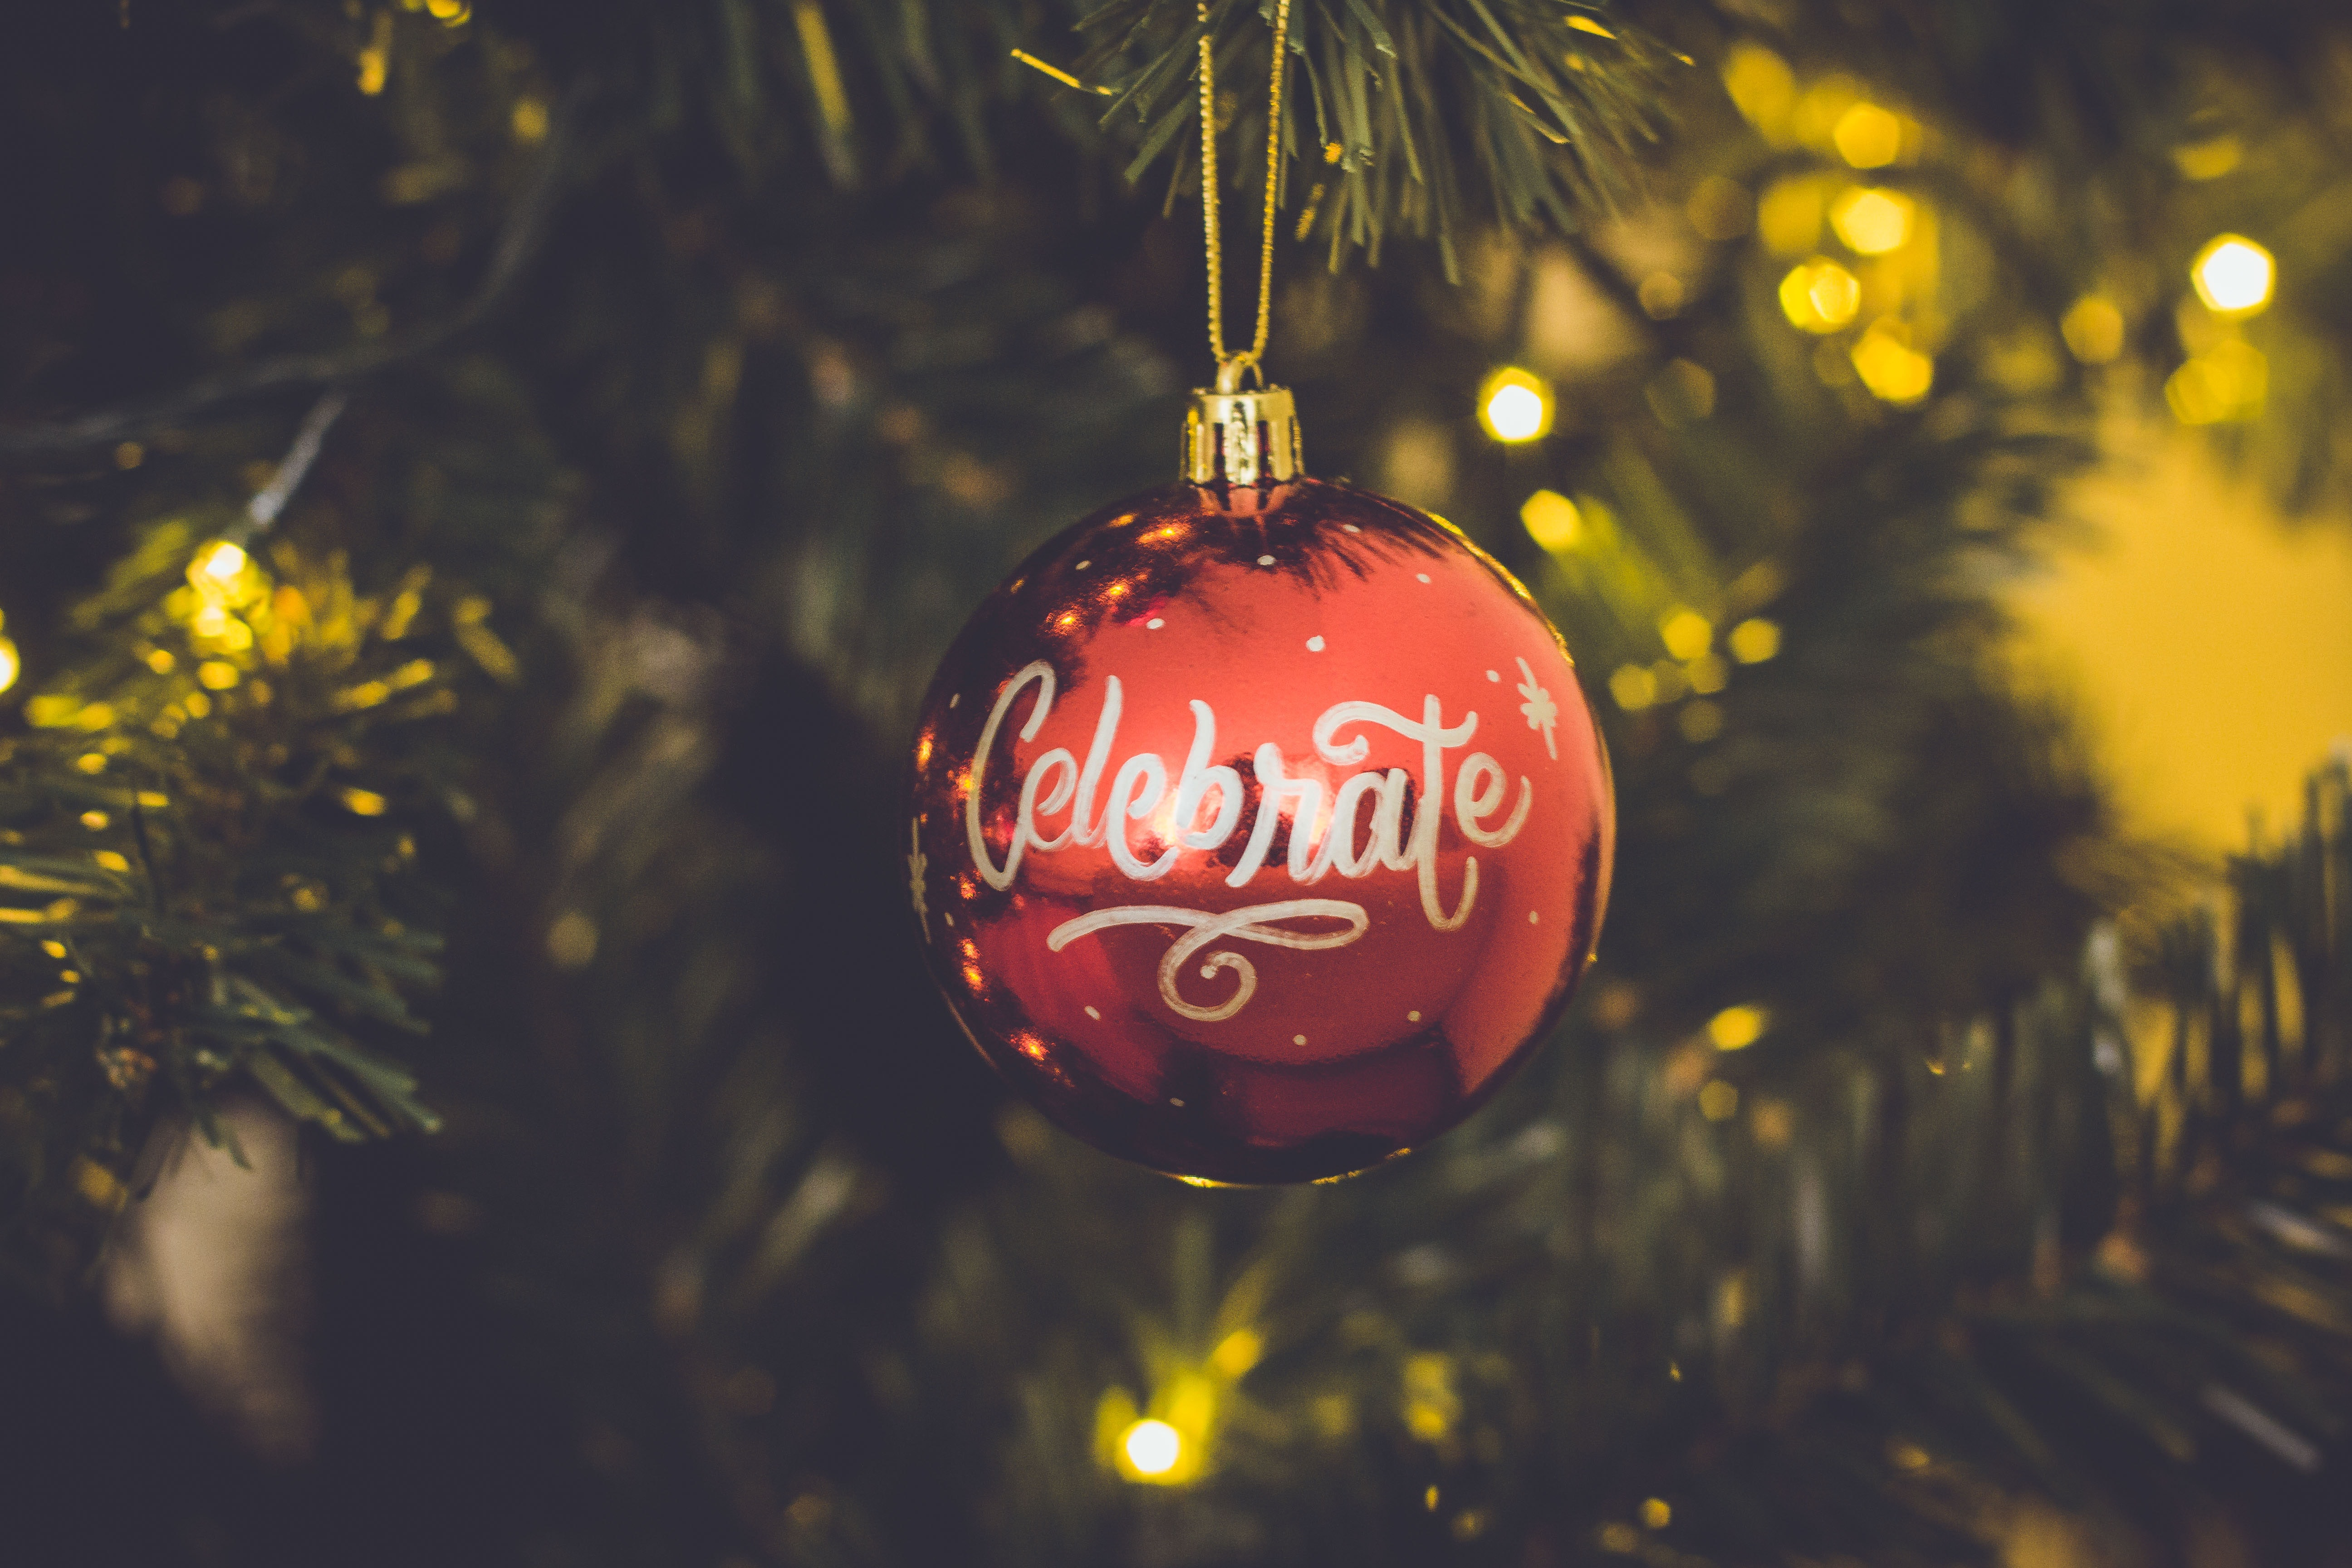 red-celebrate-print-baubles-hang-on-green-christmas-tree-714899